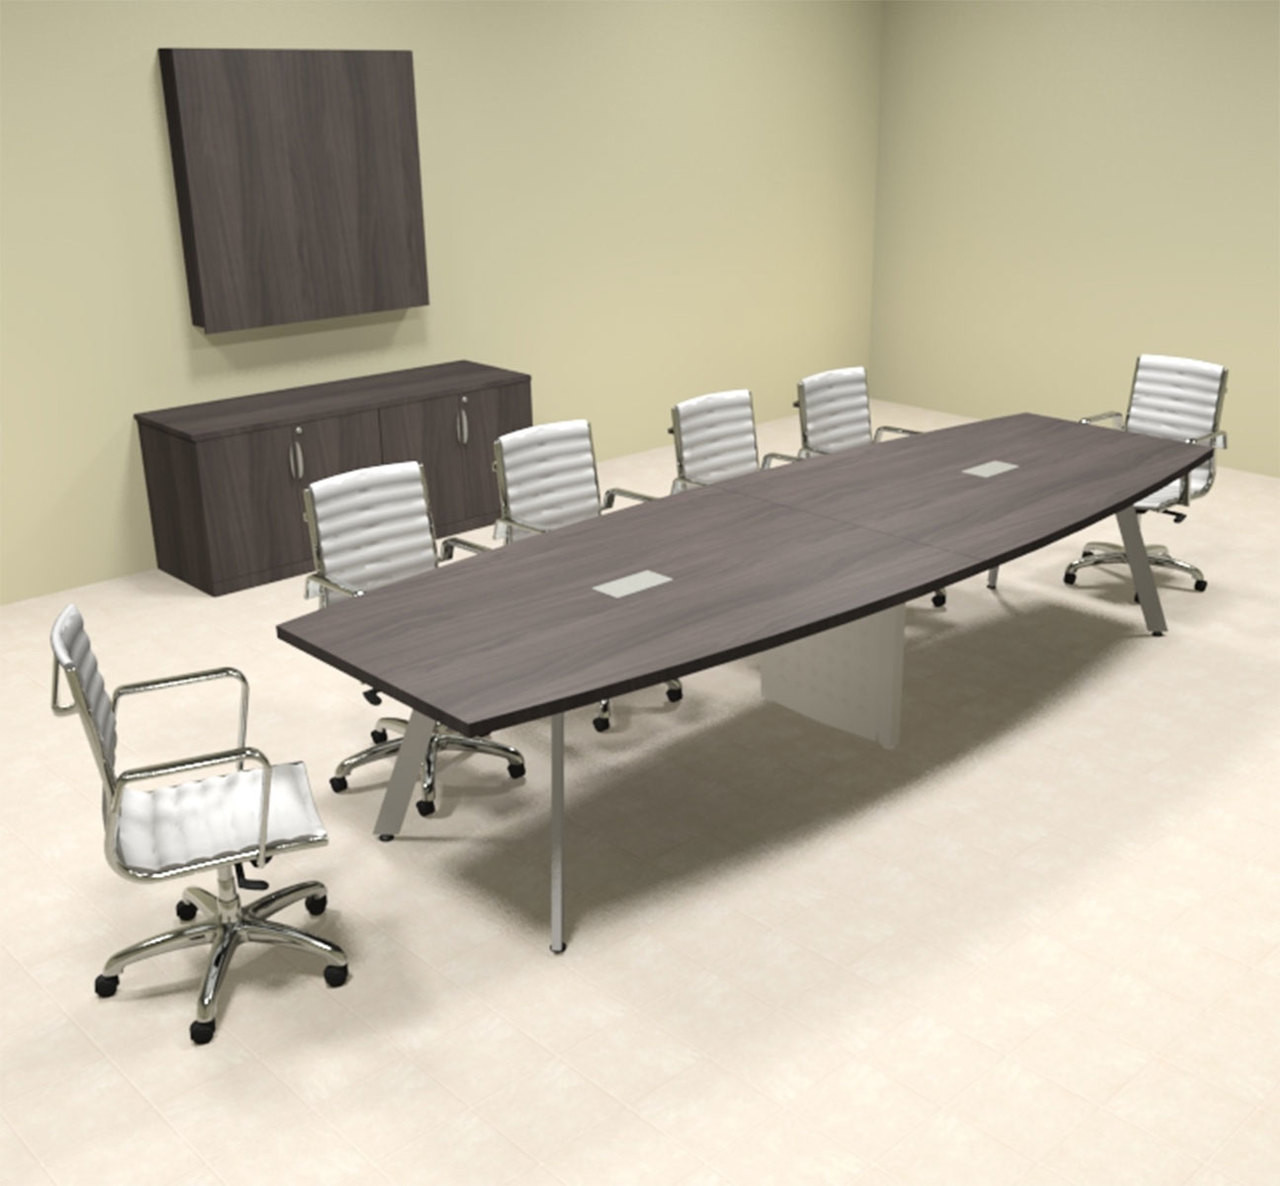 Modern Boat shaped 12' Feet Conference Table, #OF-CON-CV21